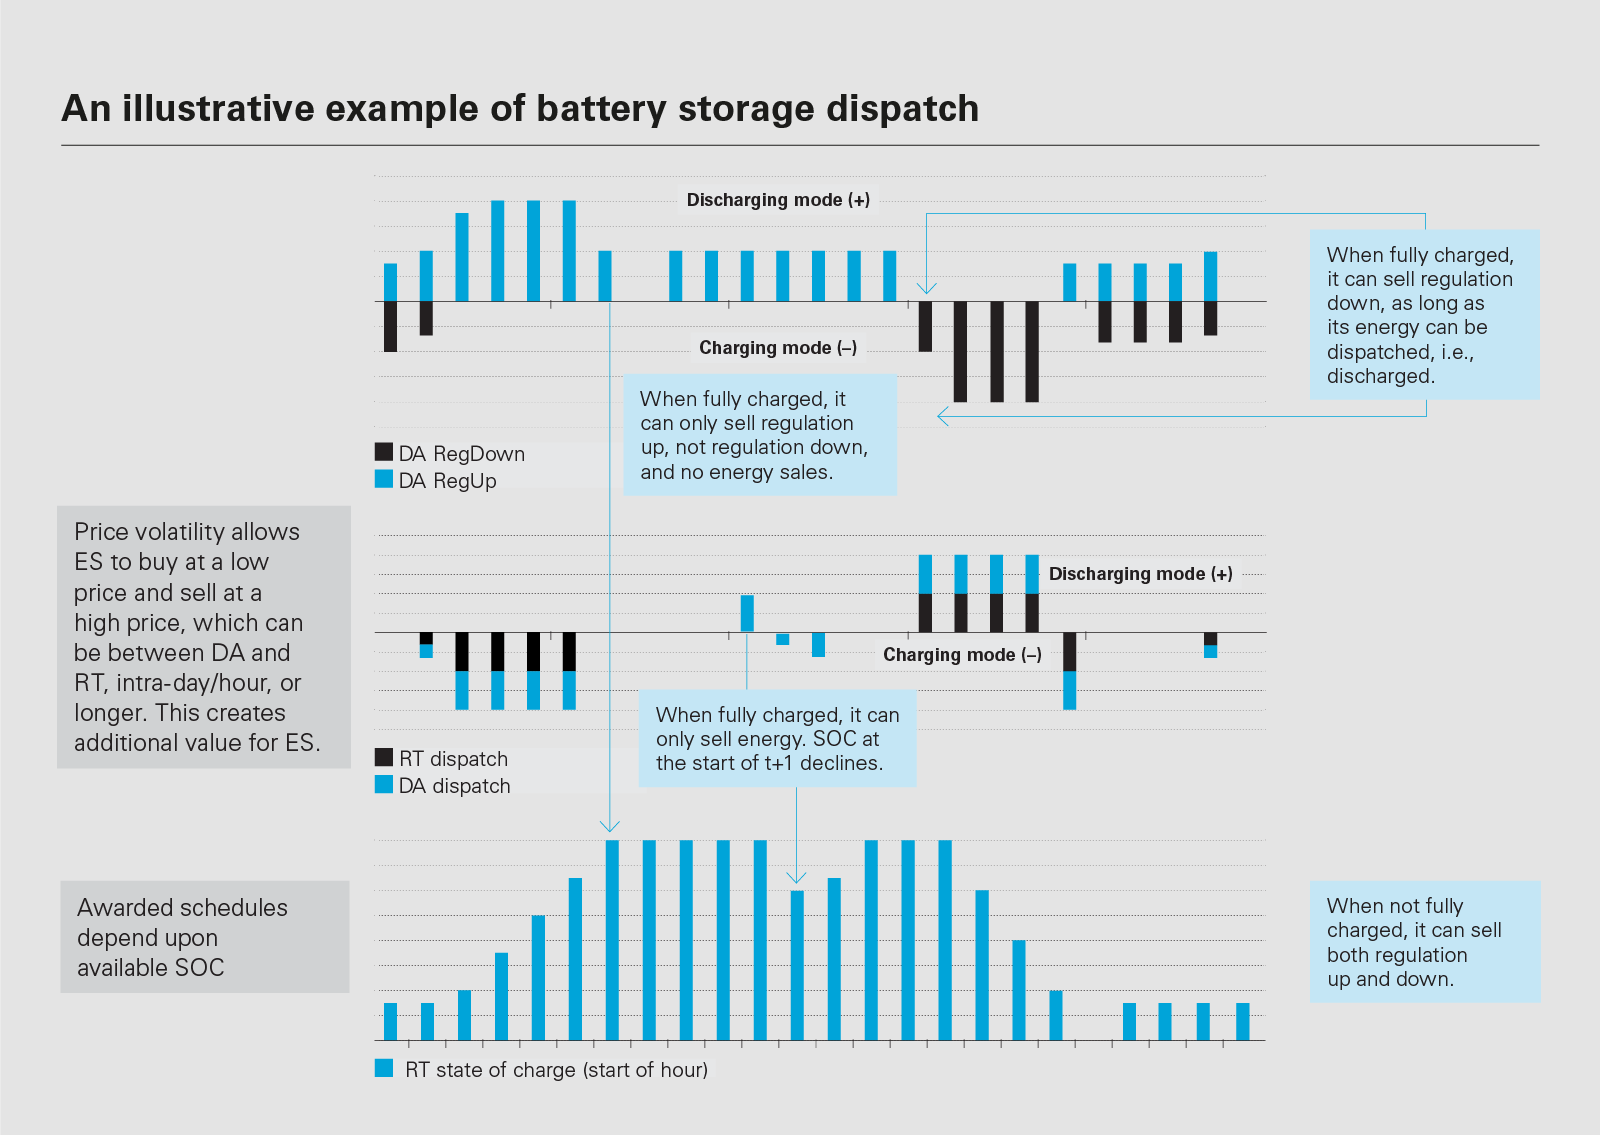 Electric storage: From idea to action | White & Case LLP - JDSupra